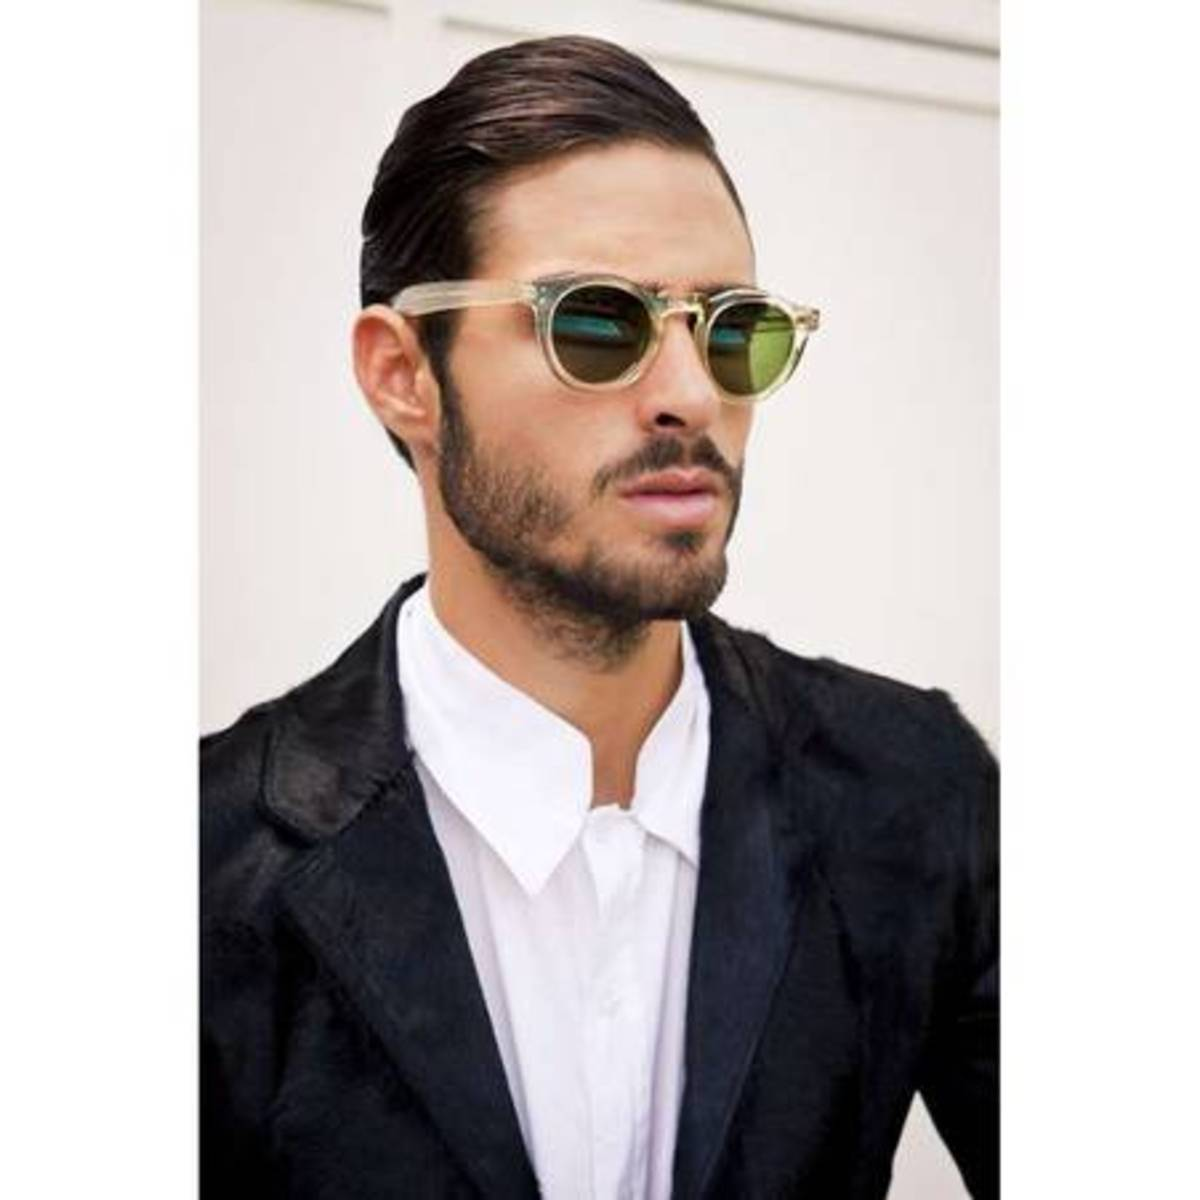 Idee-coupe-de-cheveux-homme-automne-hiver-2015_reference2